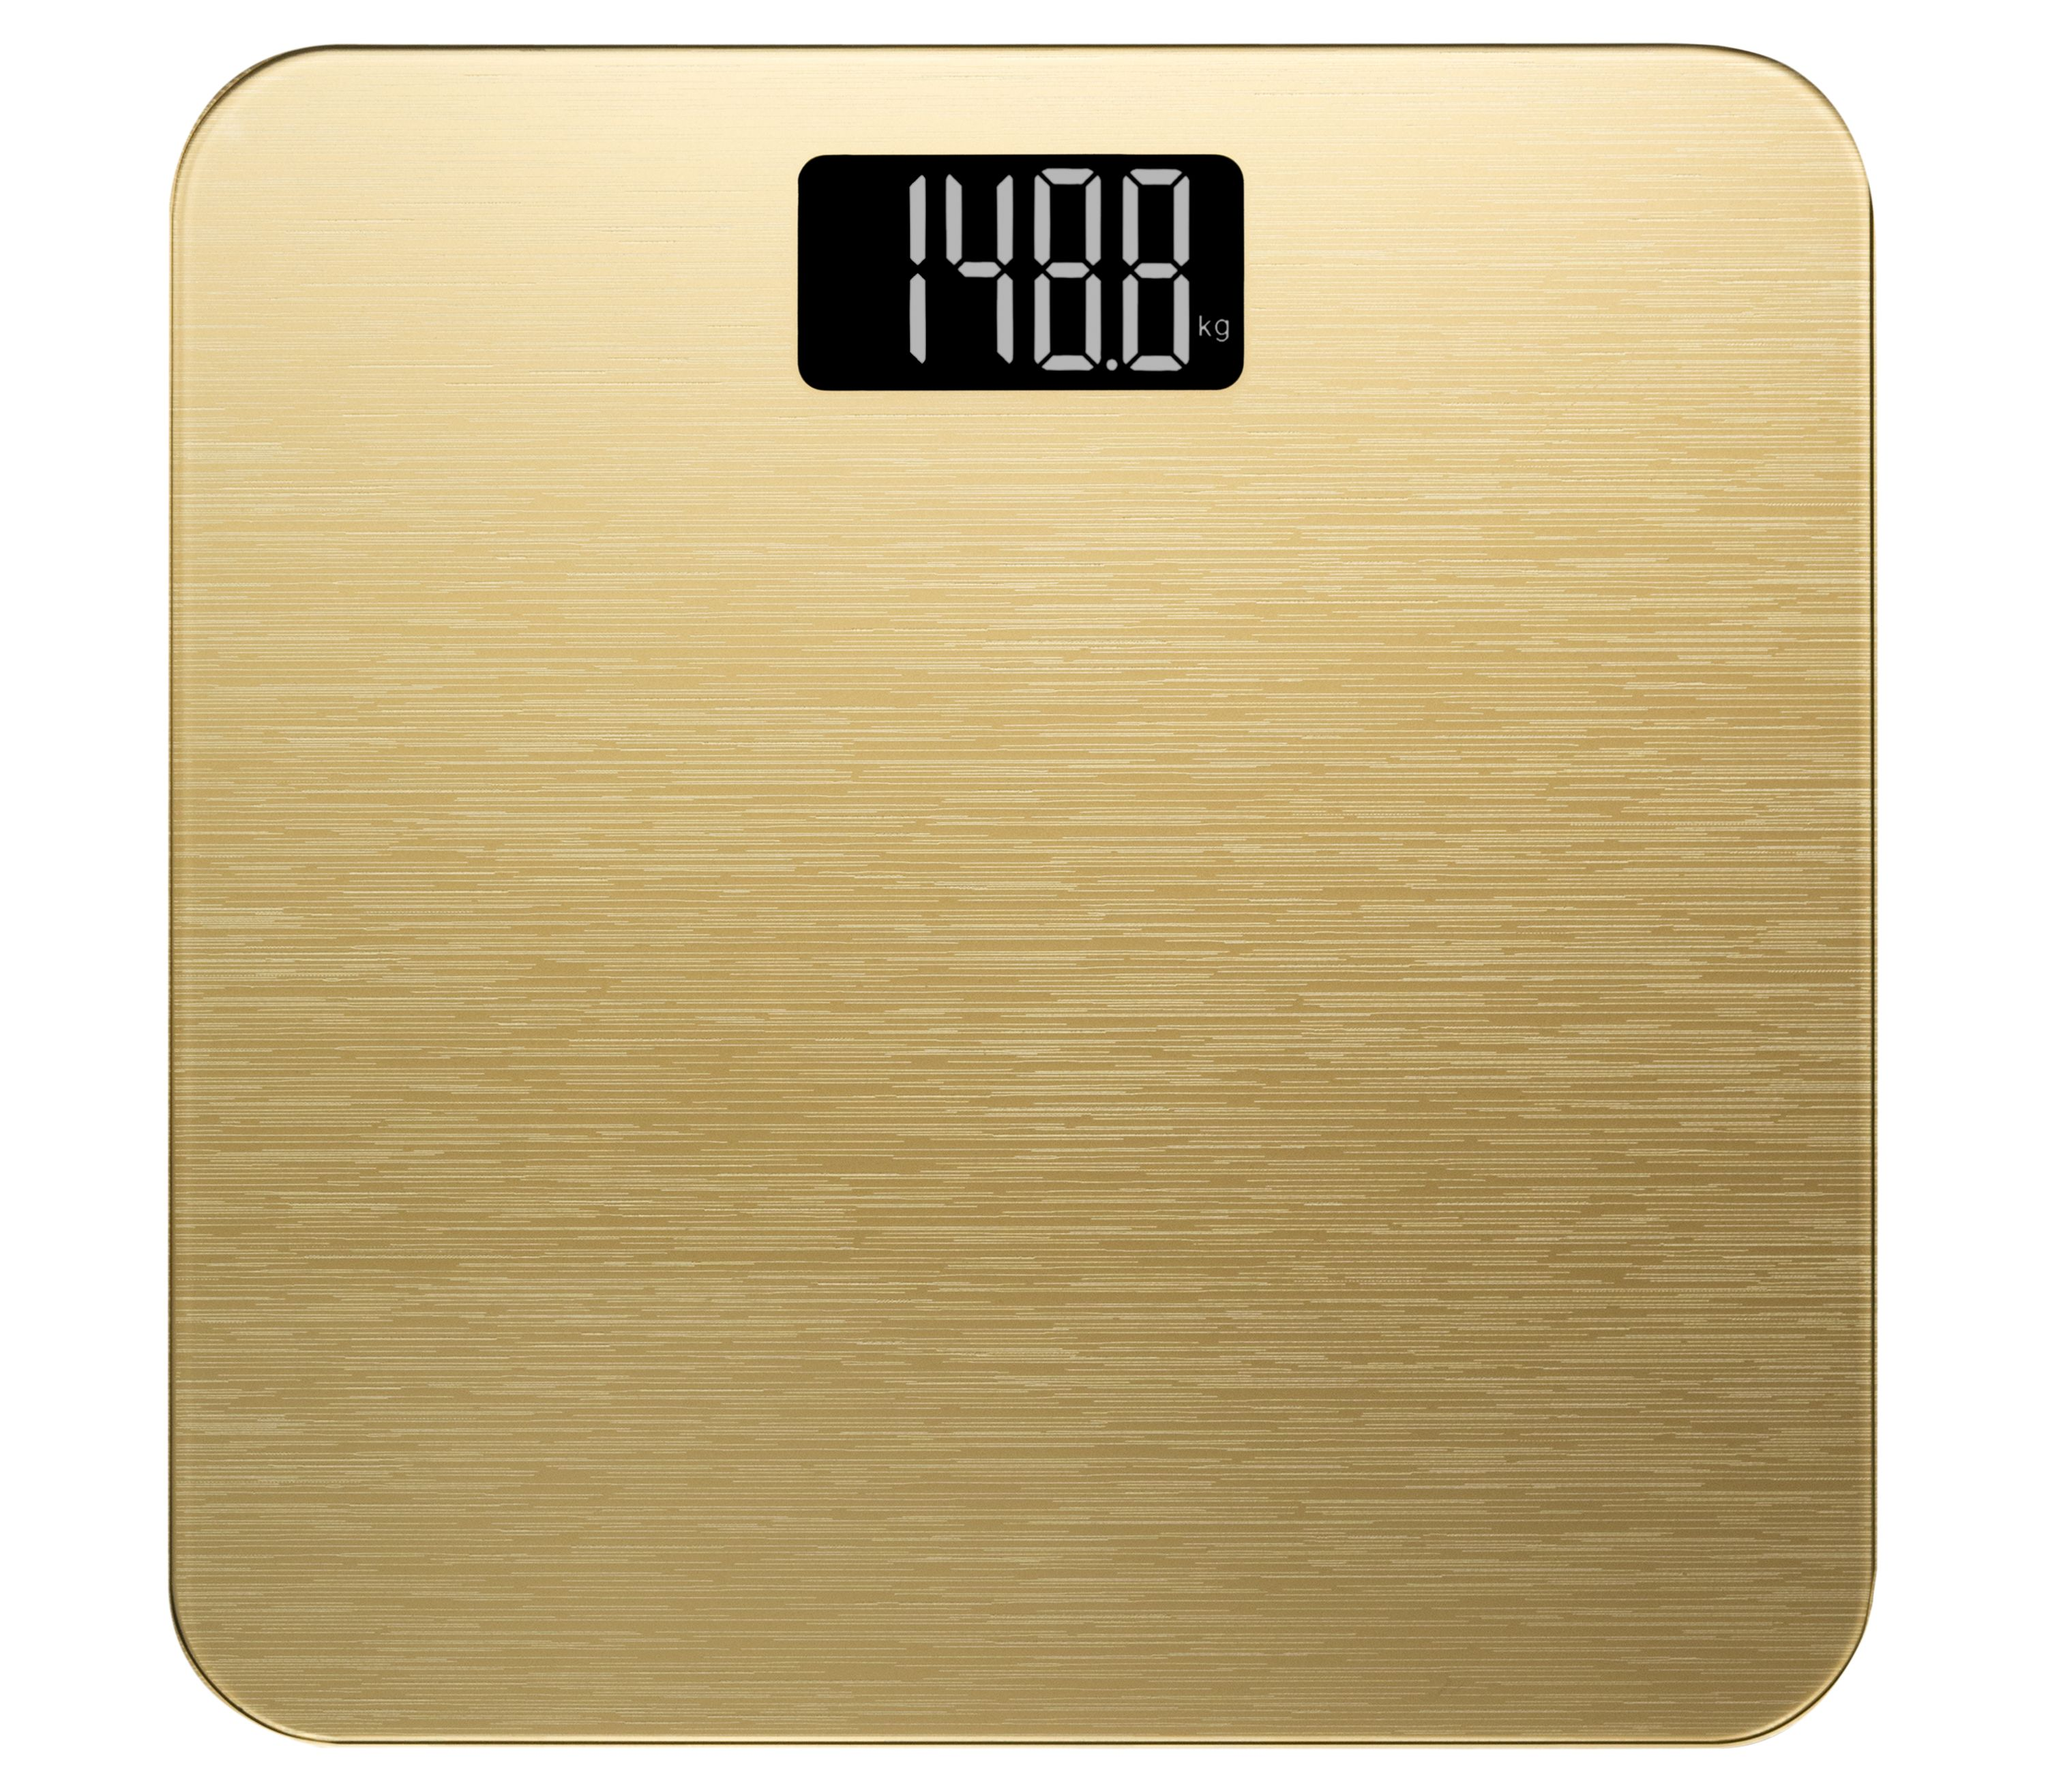 bathroom scale walmart. Smart Weigh 400lb LCD Bathroom Digital Body Weight Scale Tempered Glass  Gold Walmart com